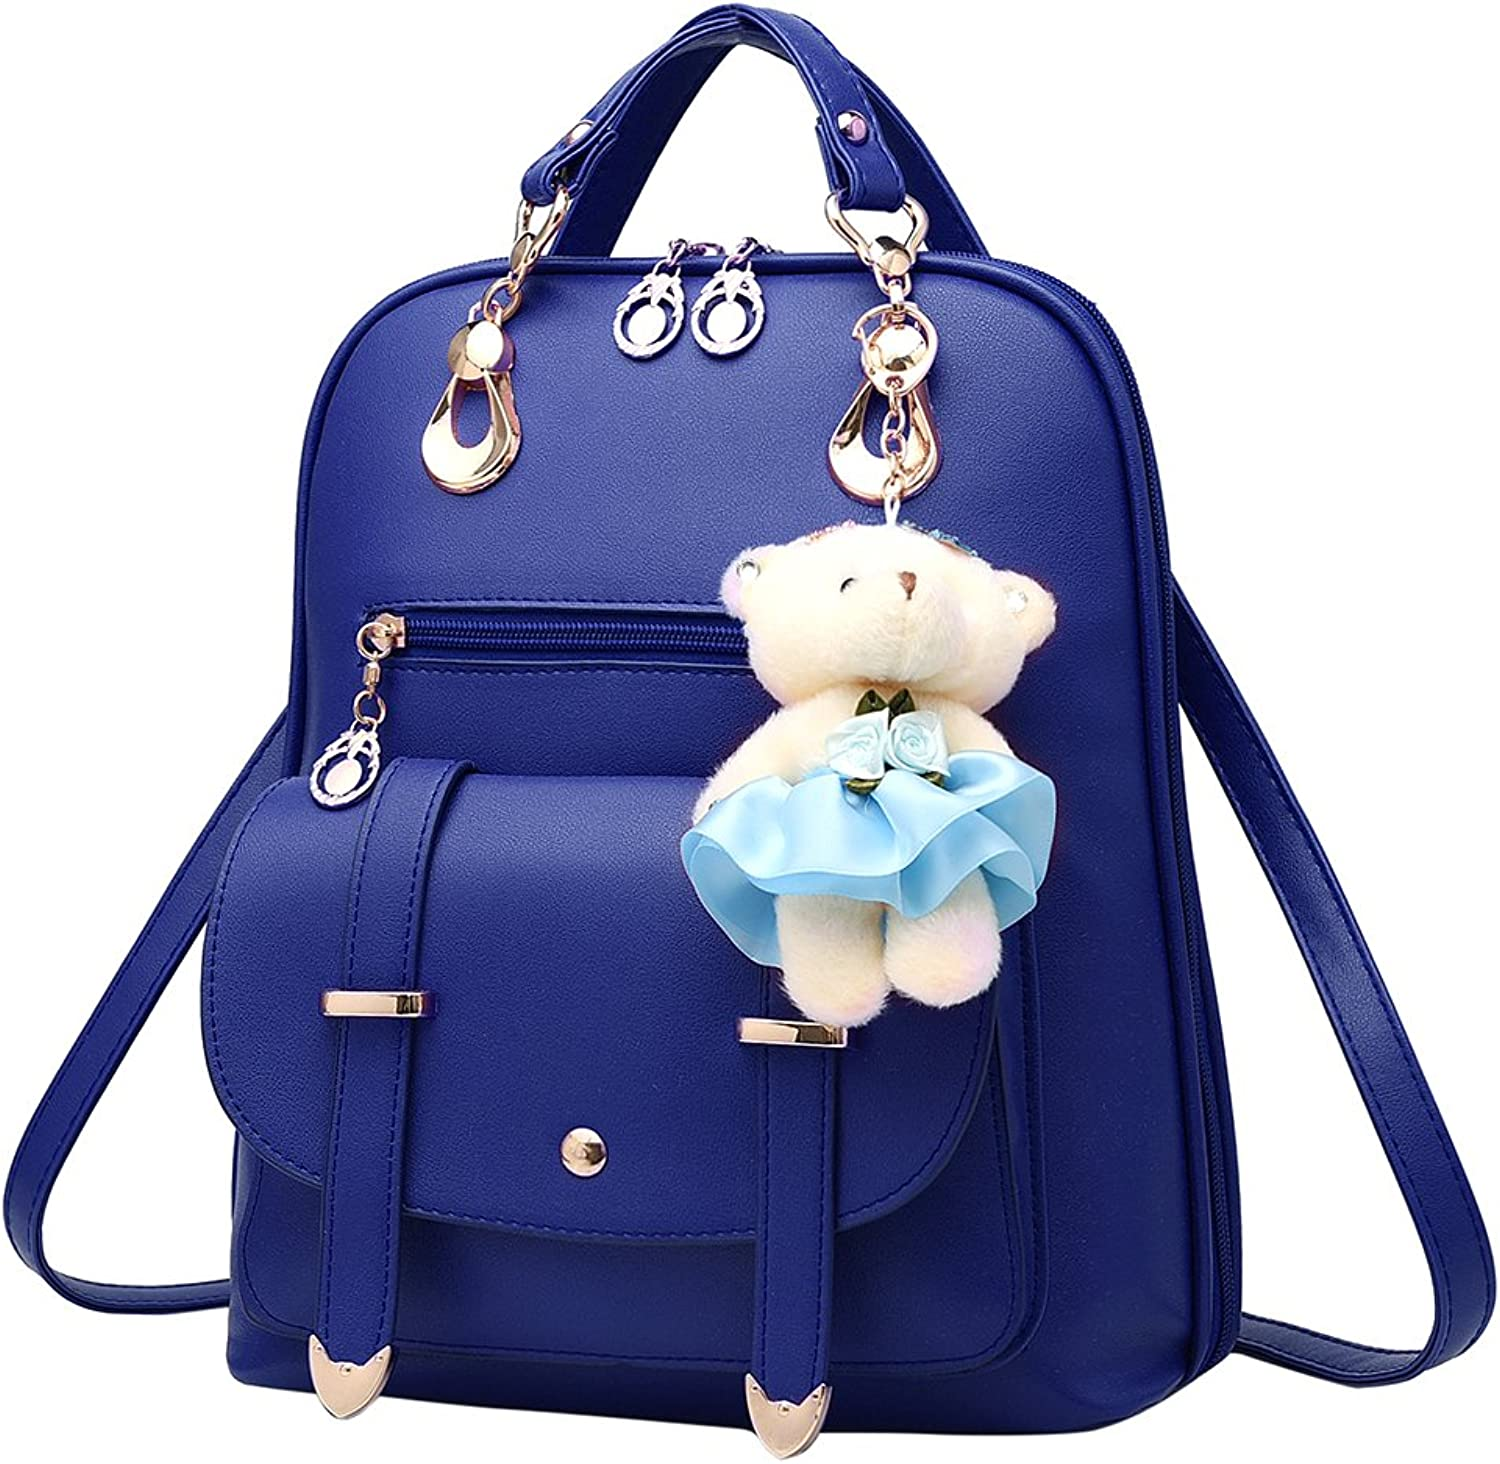 CYNDIE Women's Casual Backpack Concise Preppy Style PU Leather Shoulder Bag with Bear Pendant